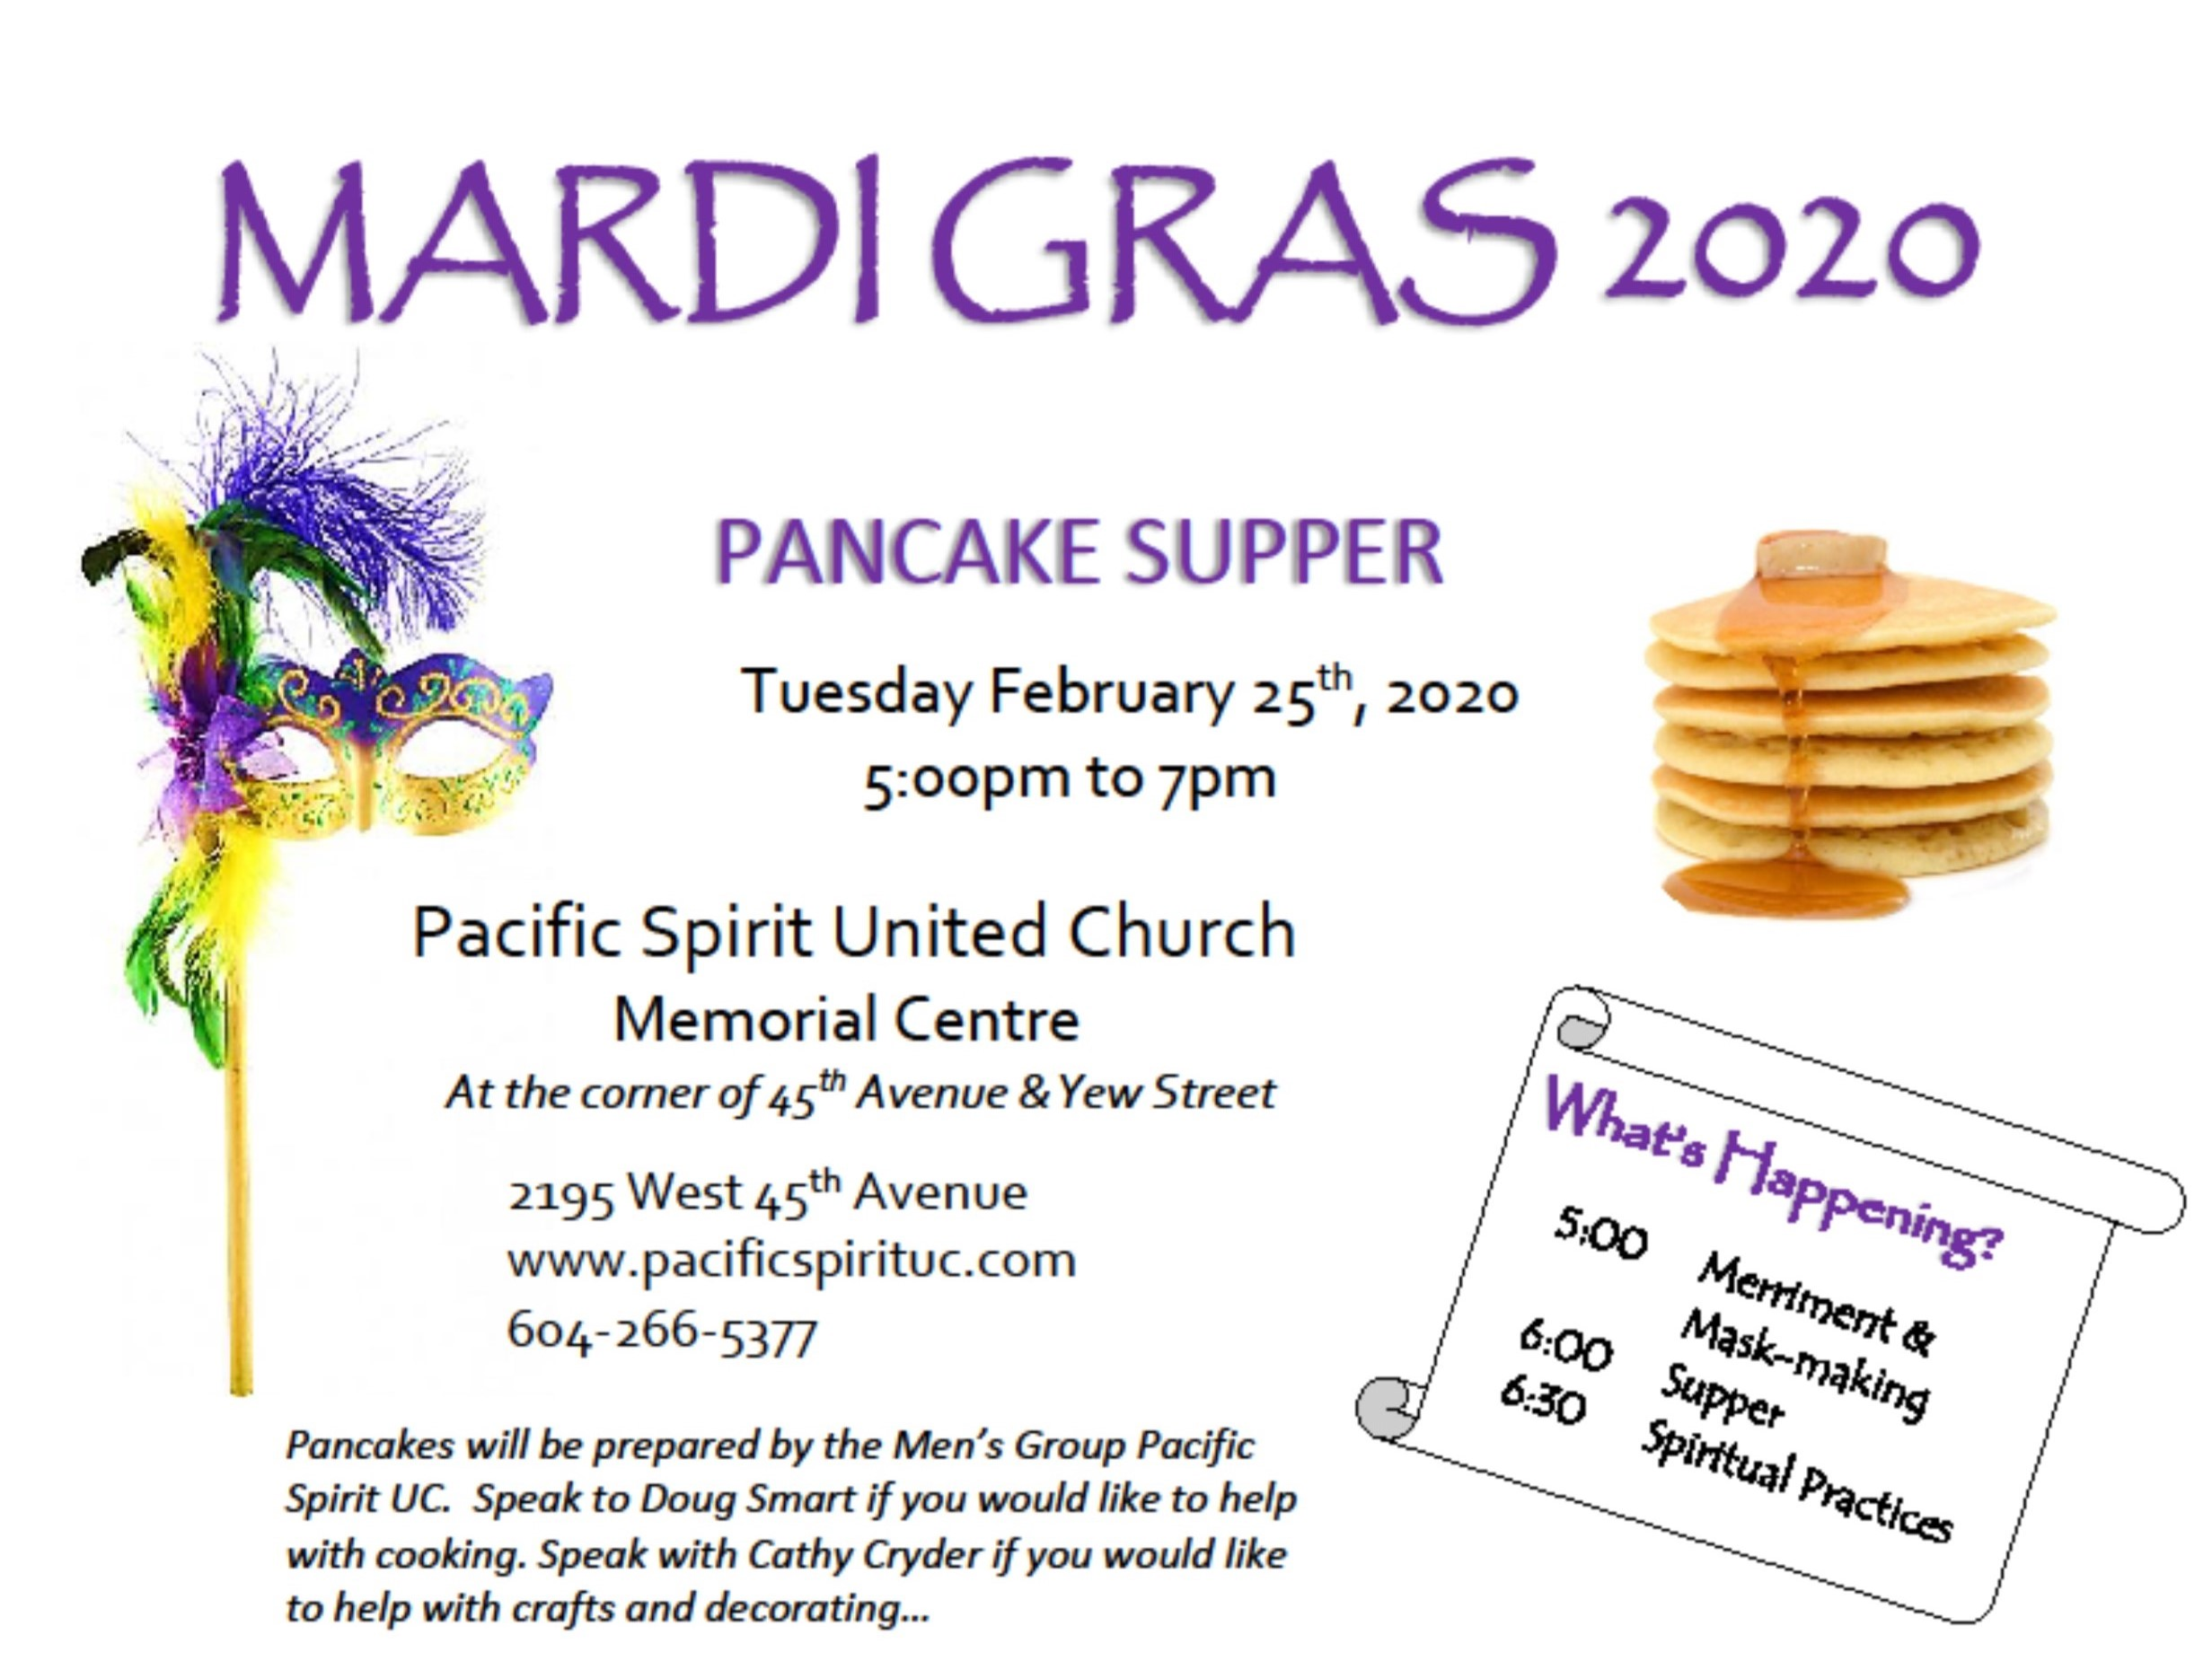 Mardi Gras Pancake Supper: February 25th 5-7pm